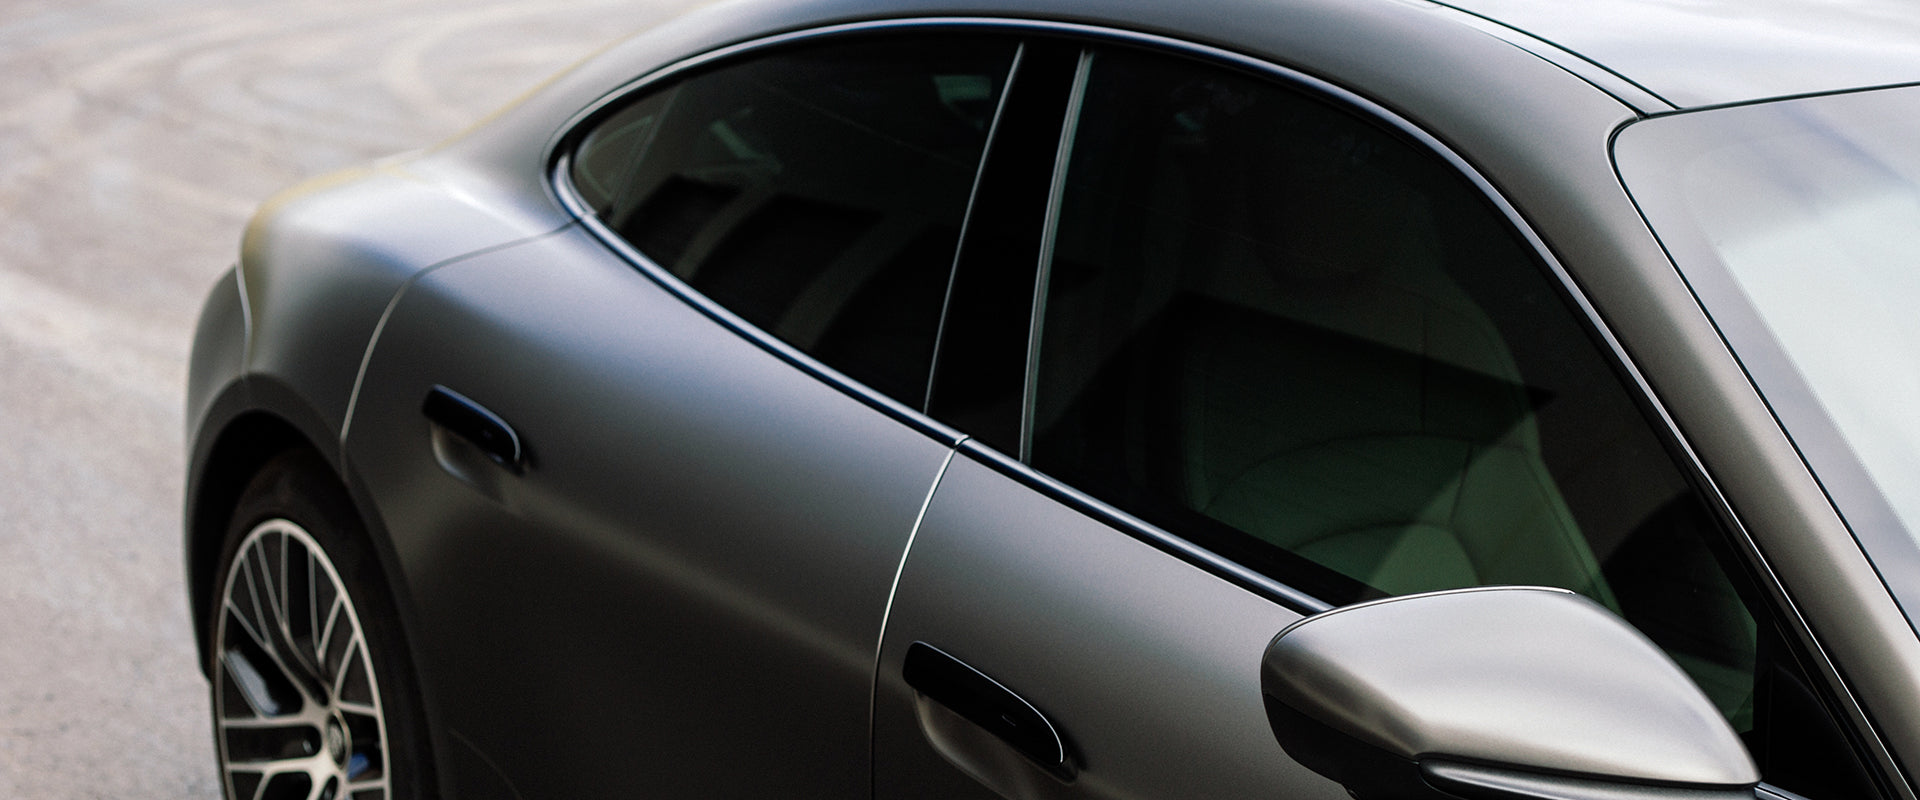 Local Window Tinting for Luxury and Exotic Performance Automobiles